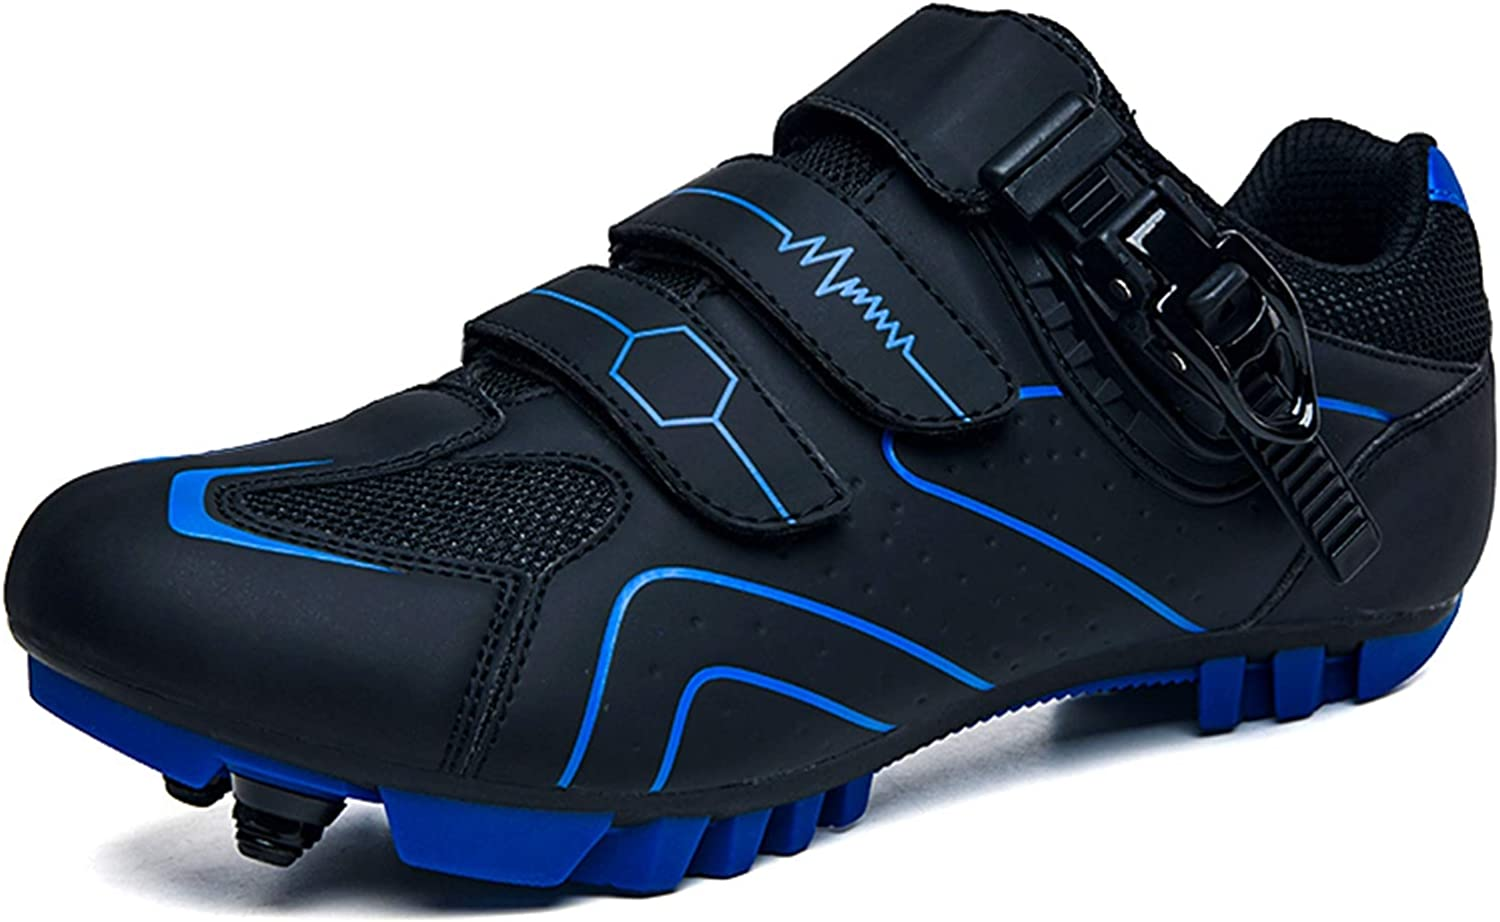 MTB Cycling Shoes Mens Road Bike Sneakers Cleat Pedal Mountain SPD Bicycle Shoe